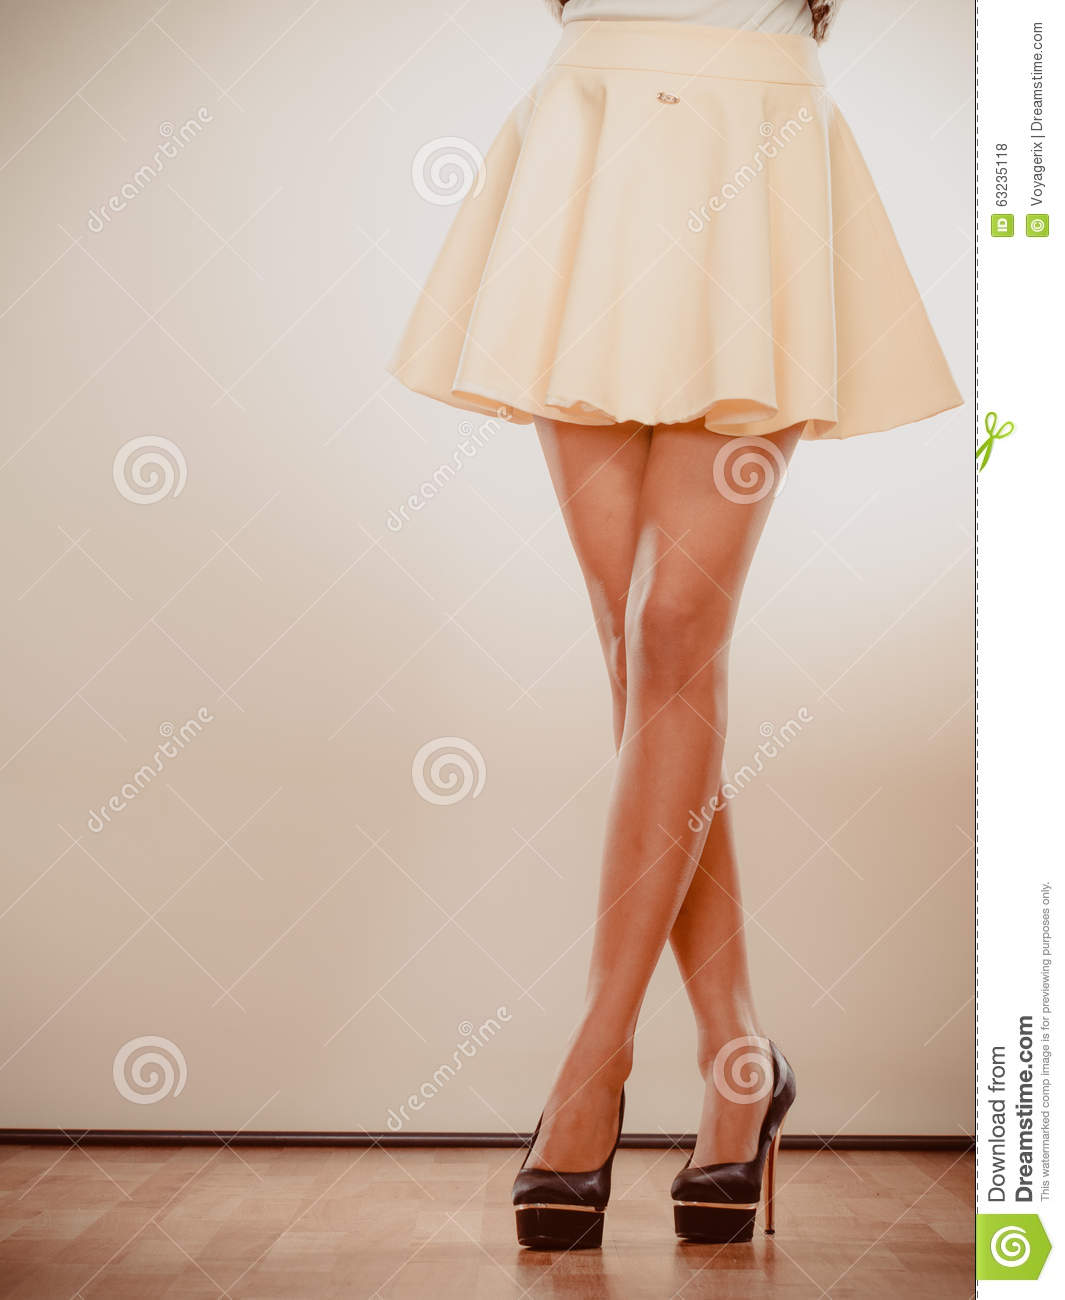 high heels spiked shoes on female legs stock photo - image of